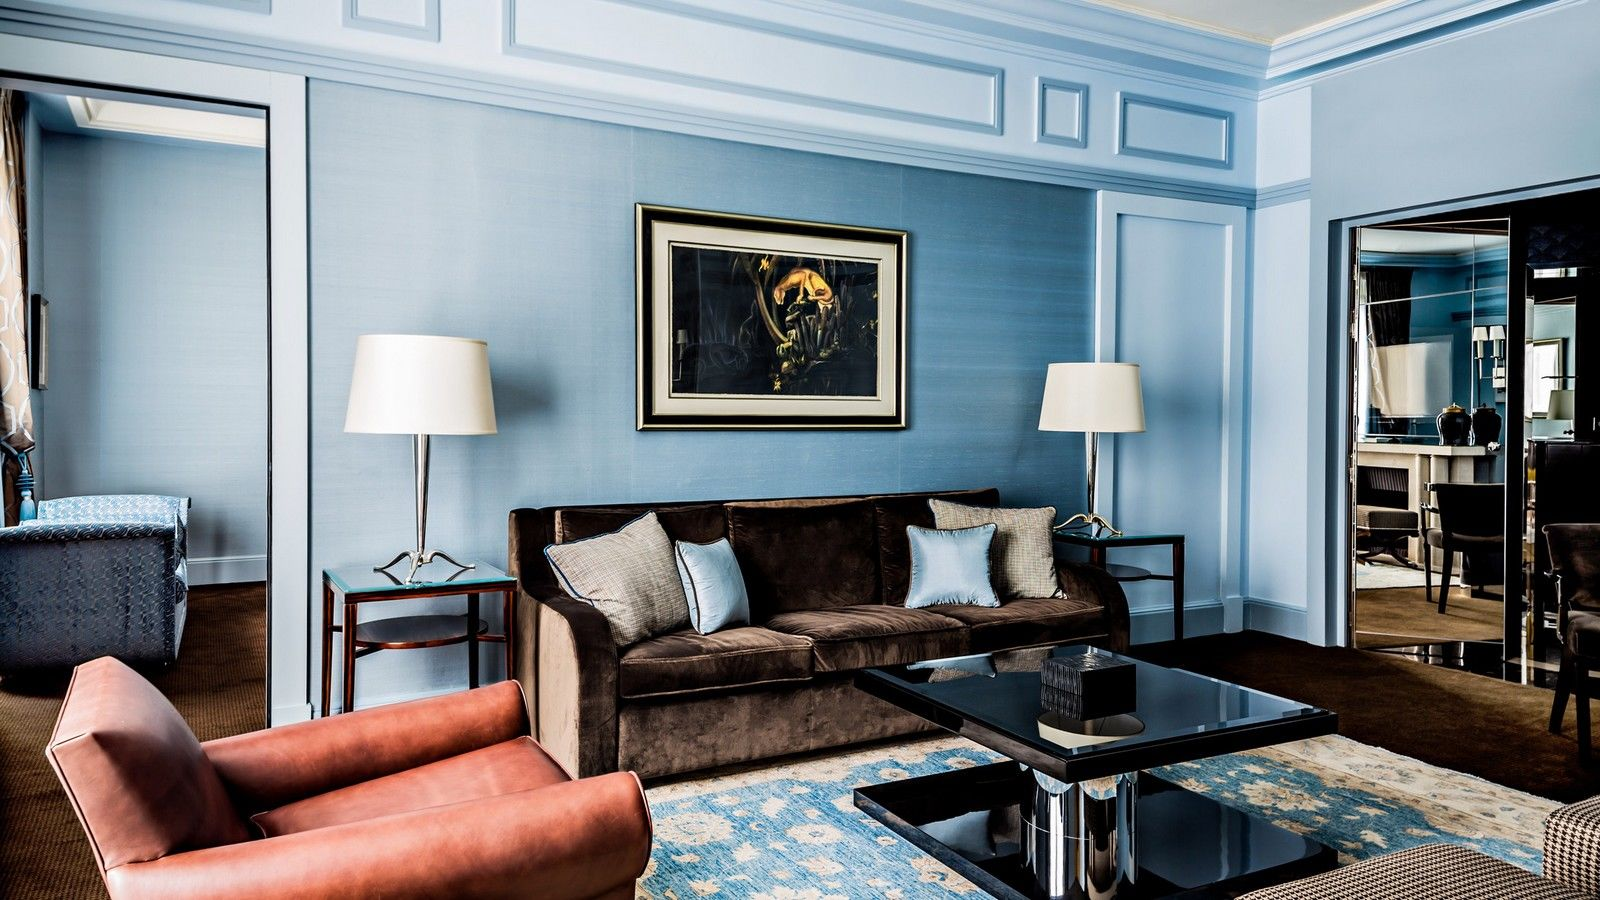 Prince de Galles Paris: Guaranteed Upgrade + 3rd Night Free Offer